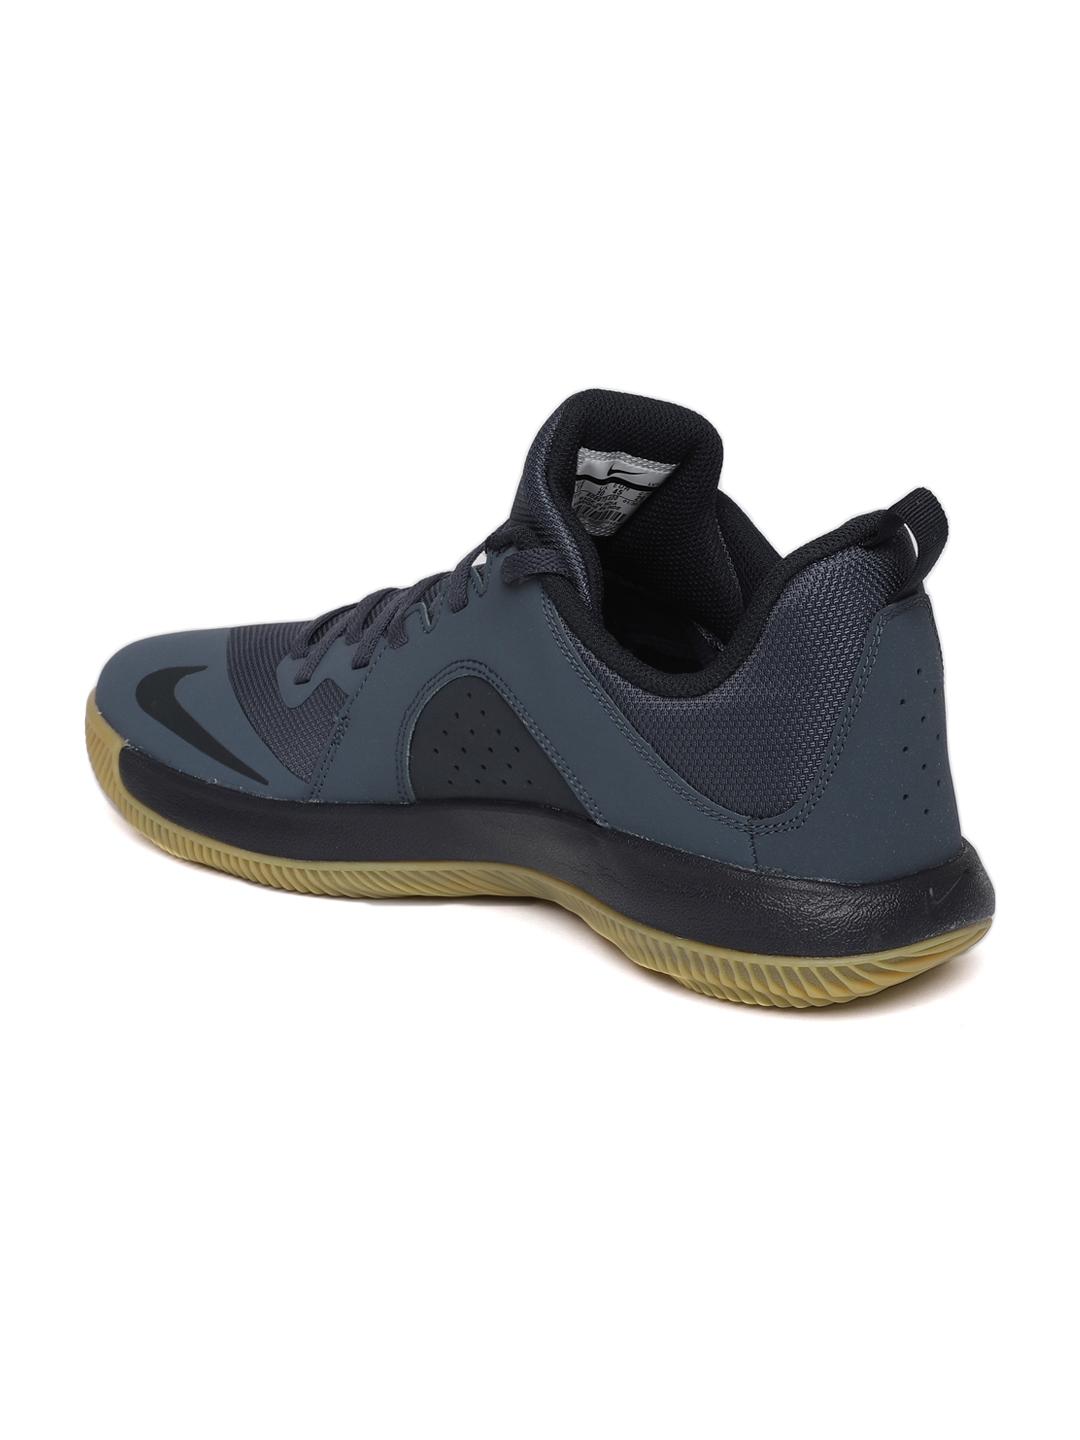 Buy Nike Men Navy Blue Fly.By Low Leather Basketball Shoes - Sports ... 293cb3fb5d